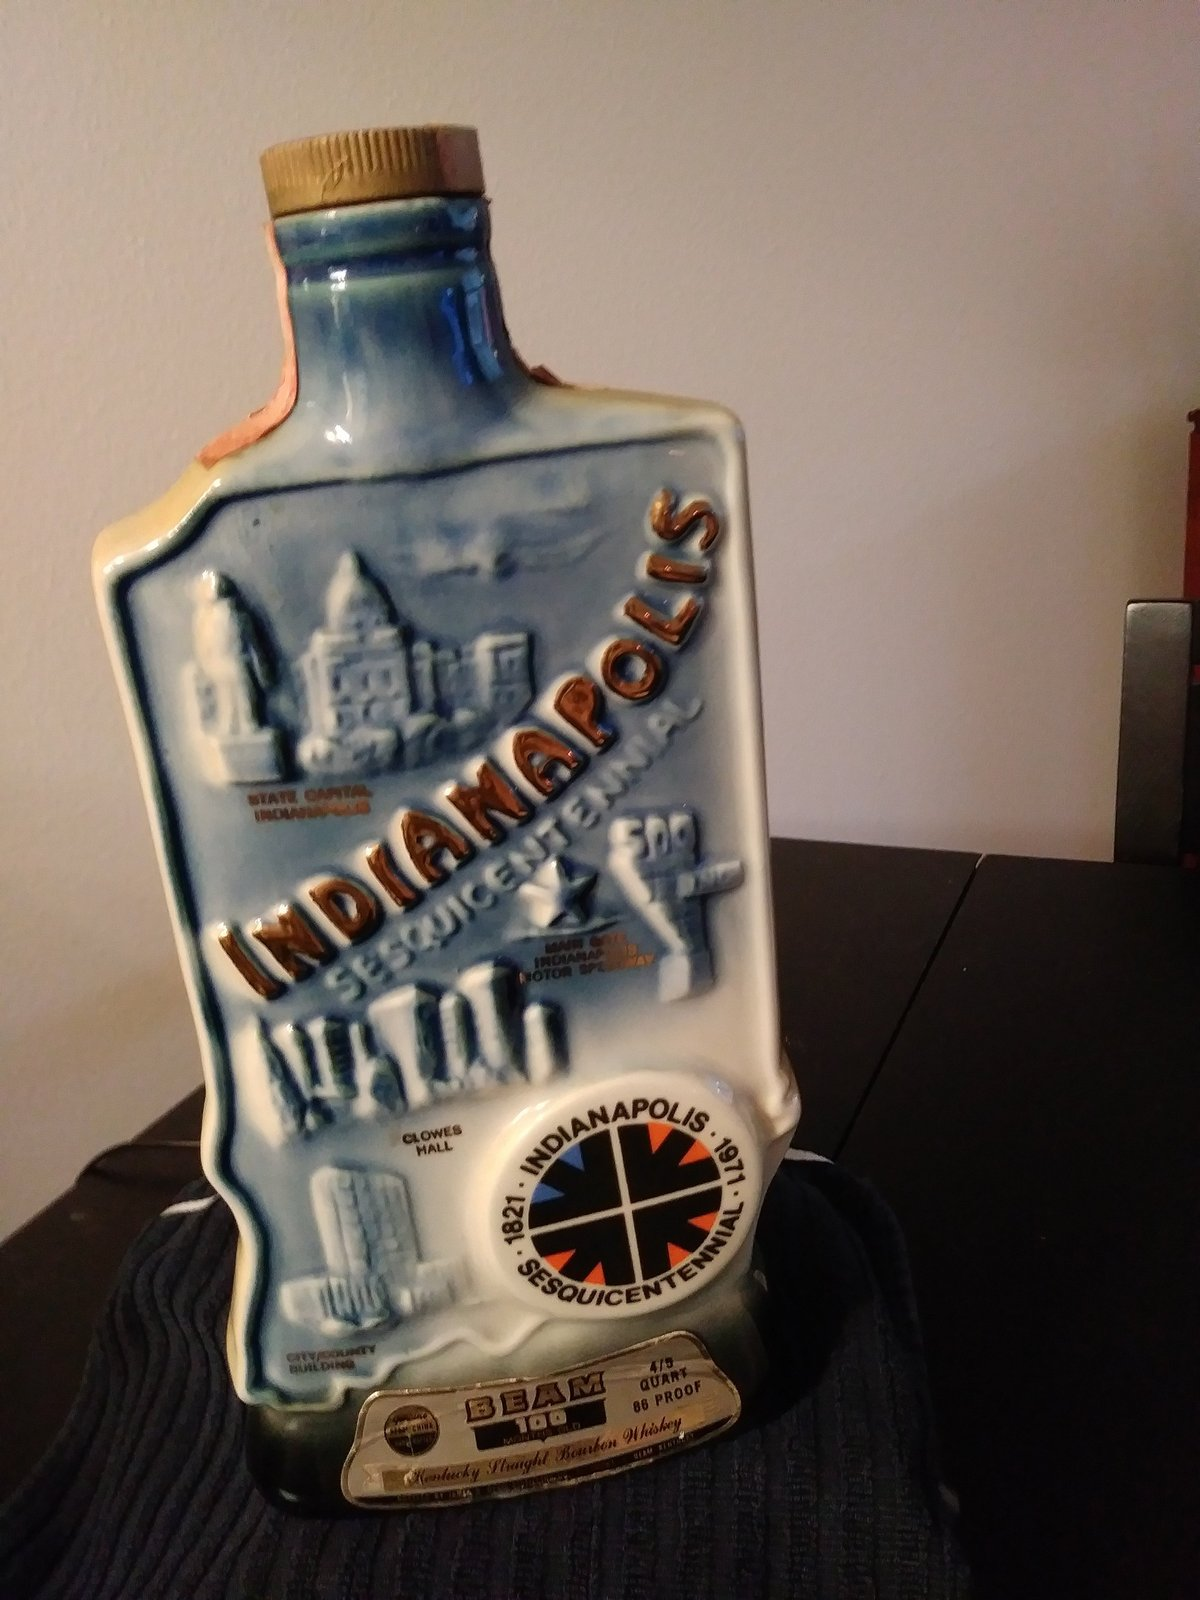 Vintage  Indianapolis Sesquicentennial 1971 Jim Beam Whisky Bottle Decanter